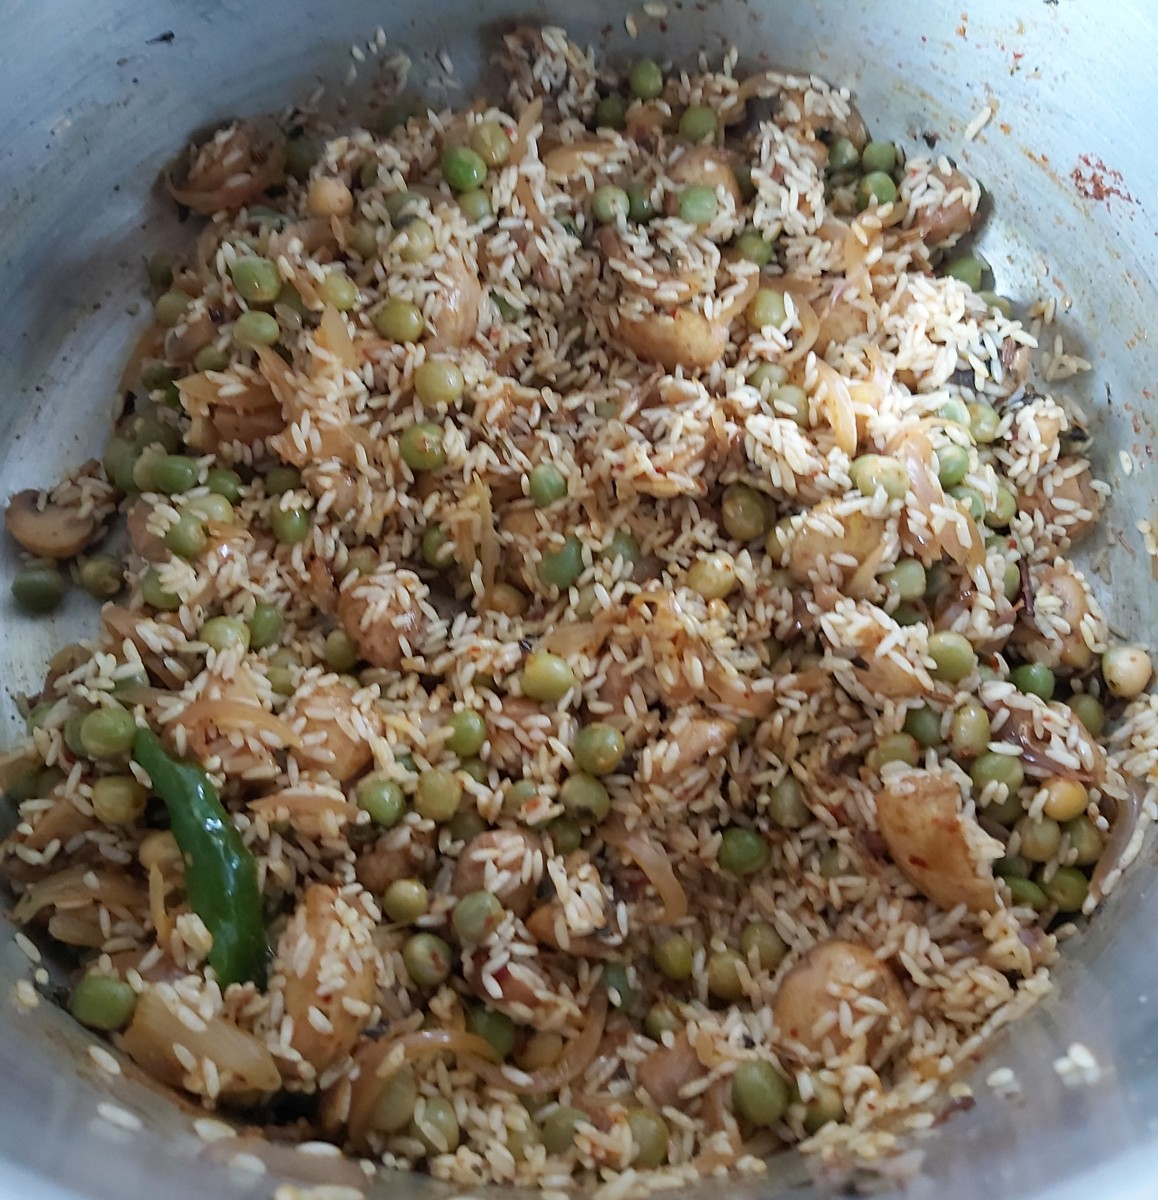 Stir gently to combine and saute the rice for a minute.